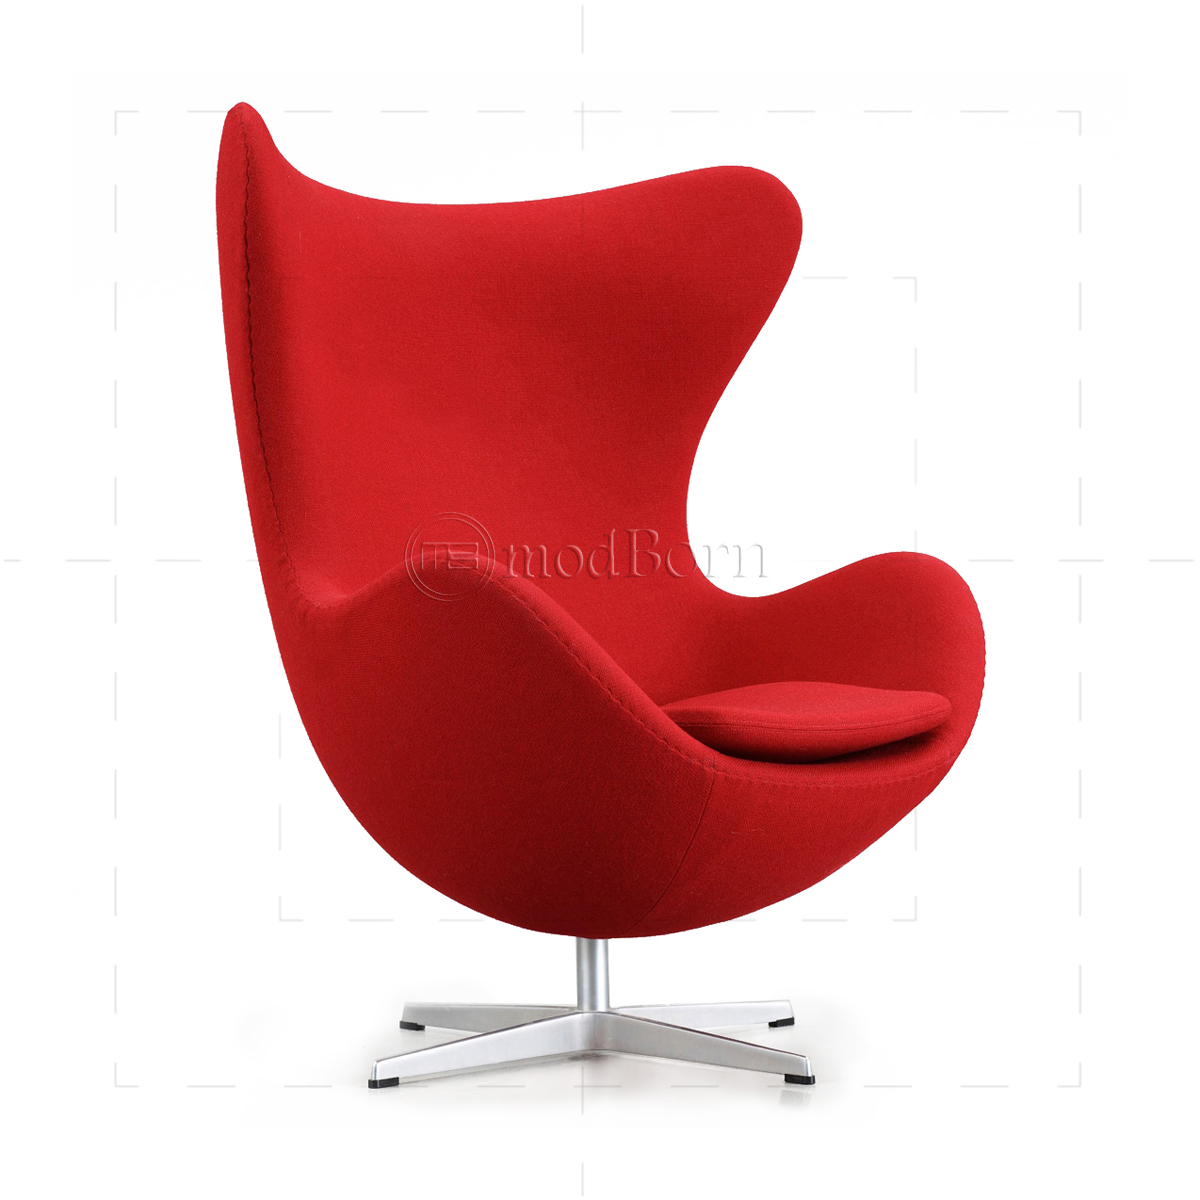 arne jacobsen style egg cashmere wool chair red. Black Bedroom Furniture Sets. Home Design Ideas